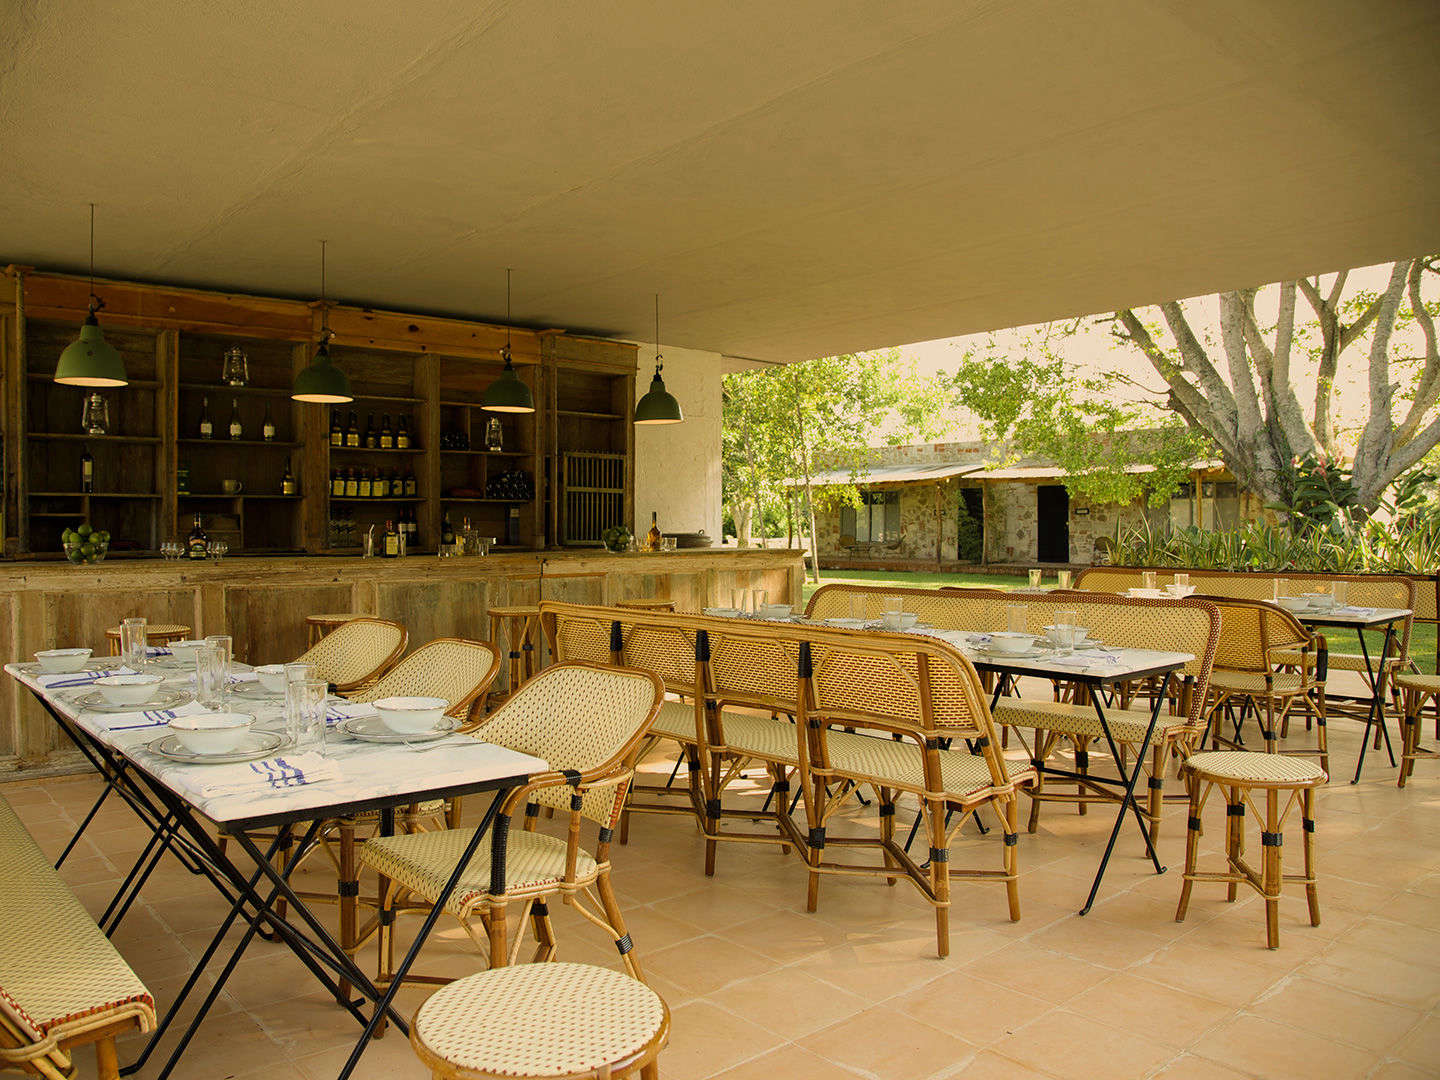 The restaurant also caters meals outdoors.